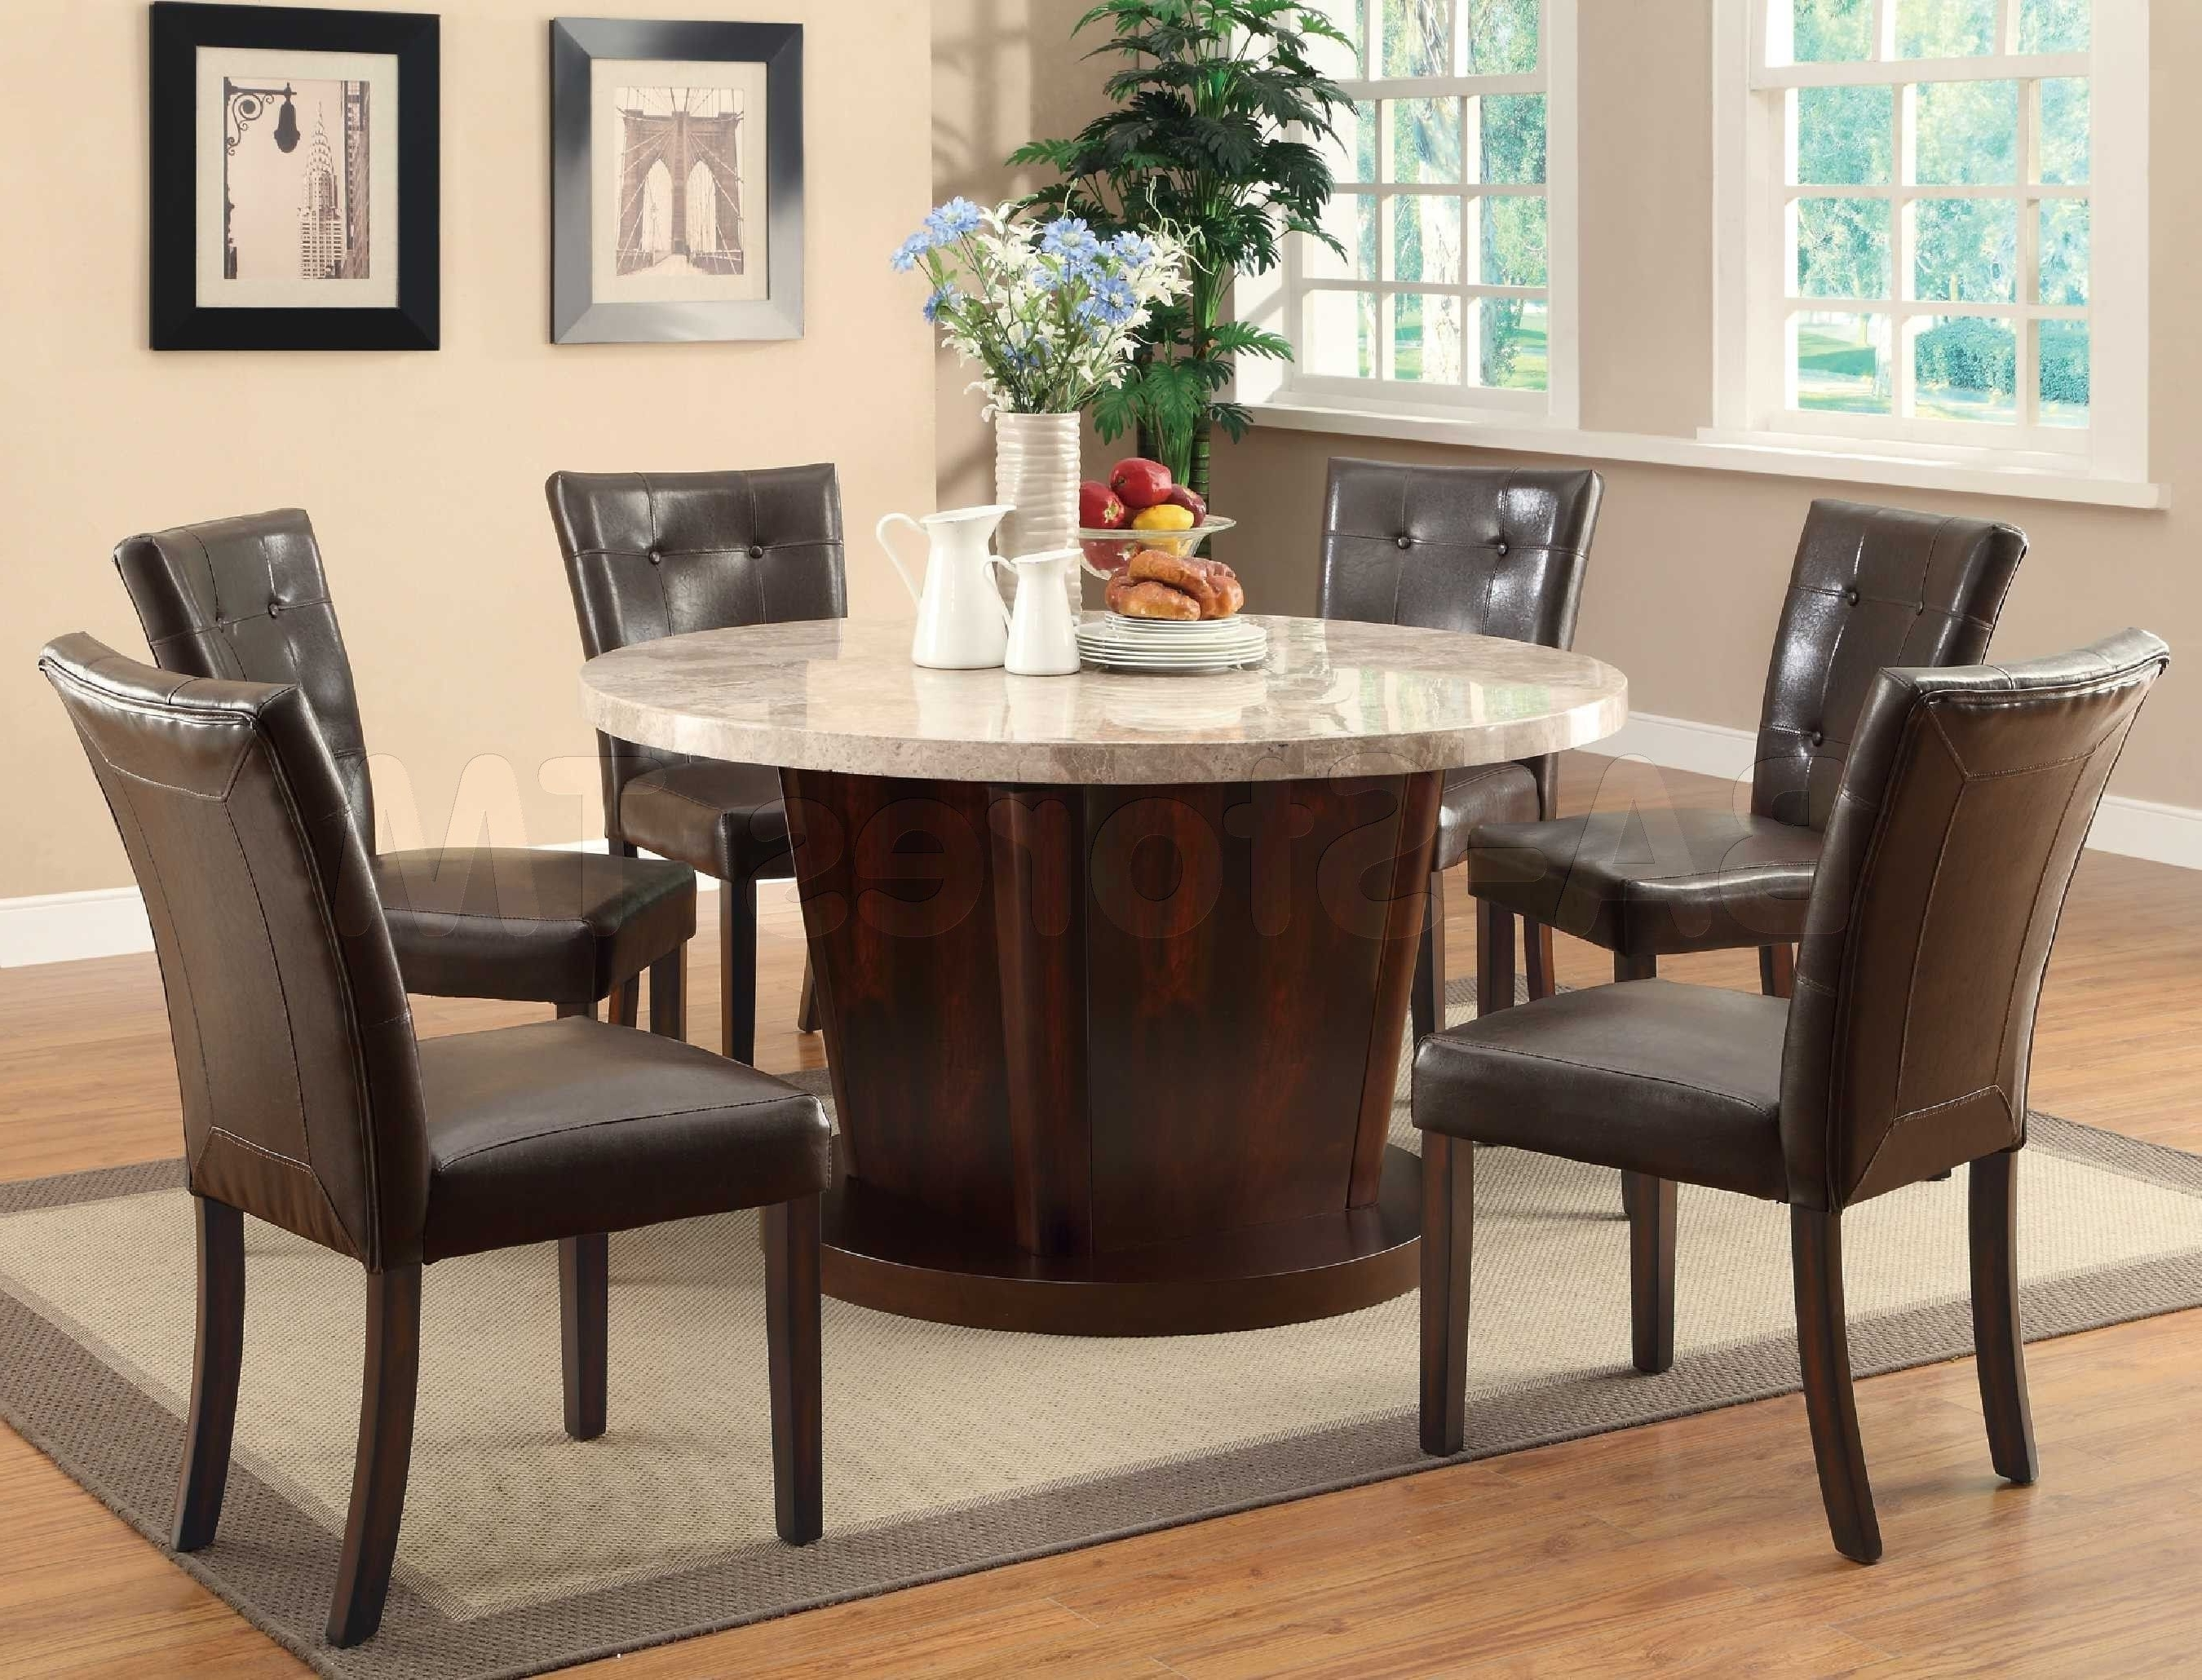 Norwood 7 Piece Rectangular Extension Dining Sets With Bench, Host & Side Chairs For Most Recently Released Low Cost Dining Room Tables. Dishy Room Tables Cheap Prices Dining (Gallery 10 of 25)